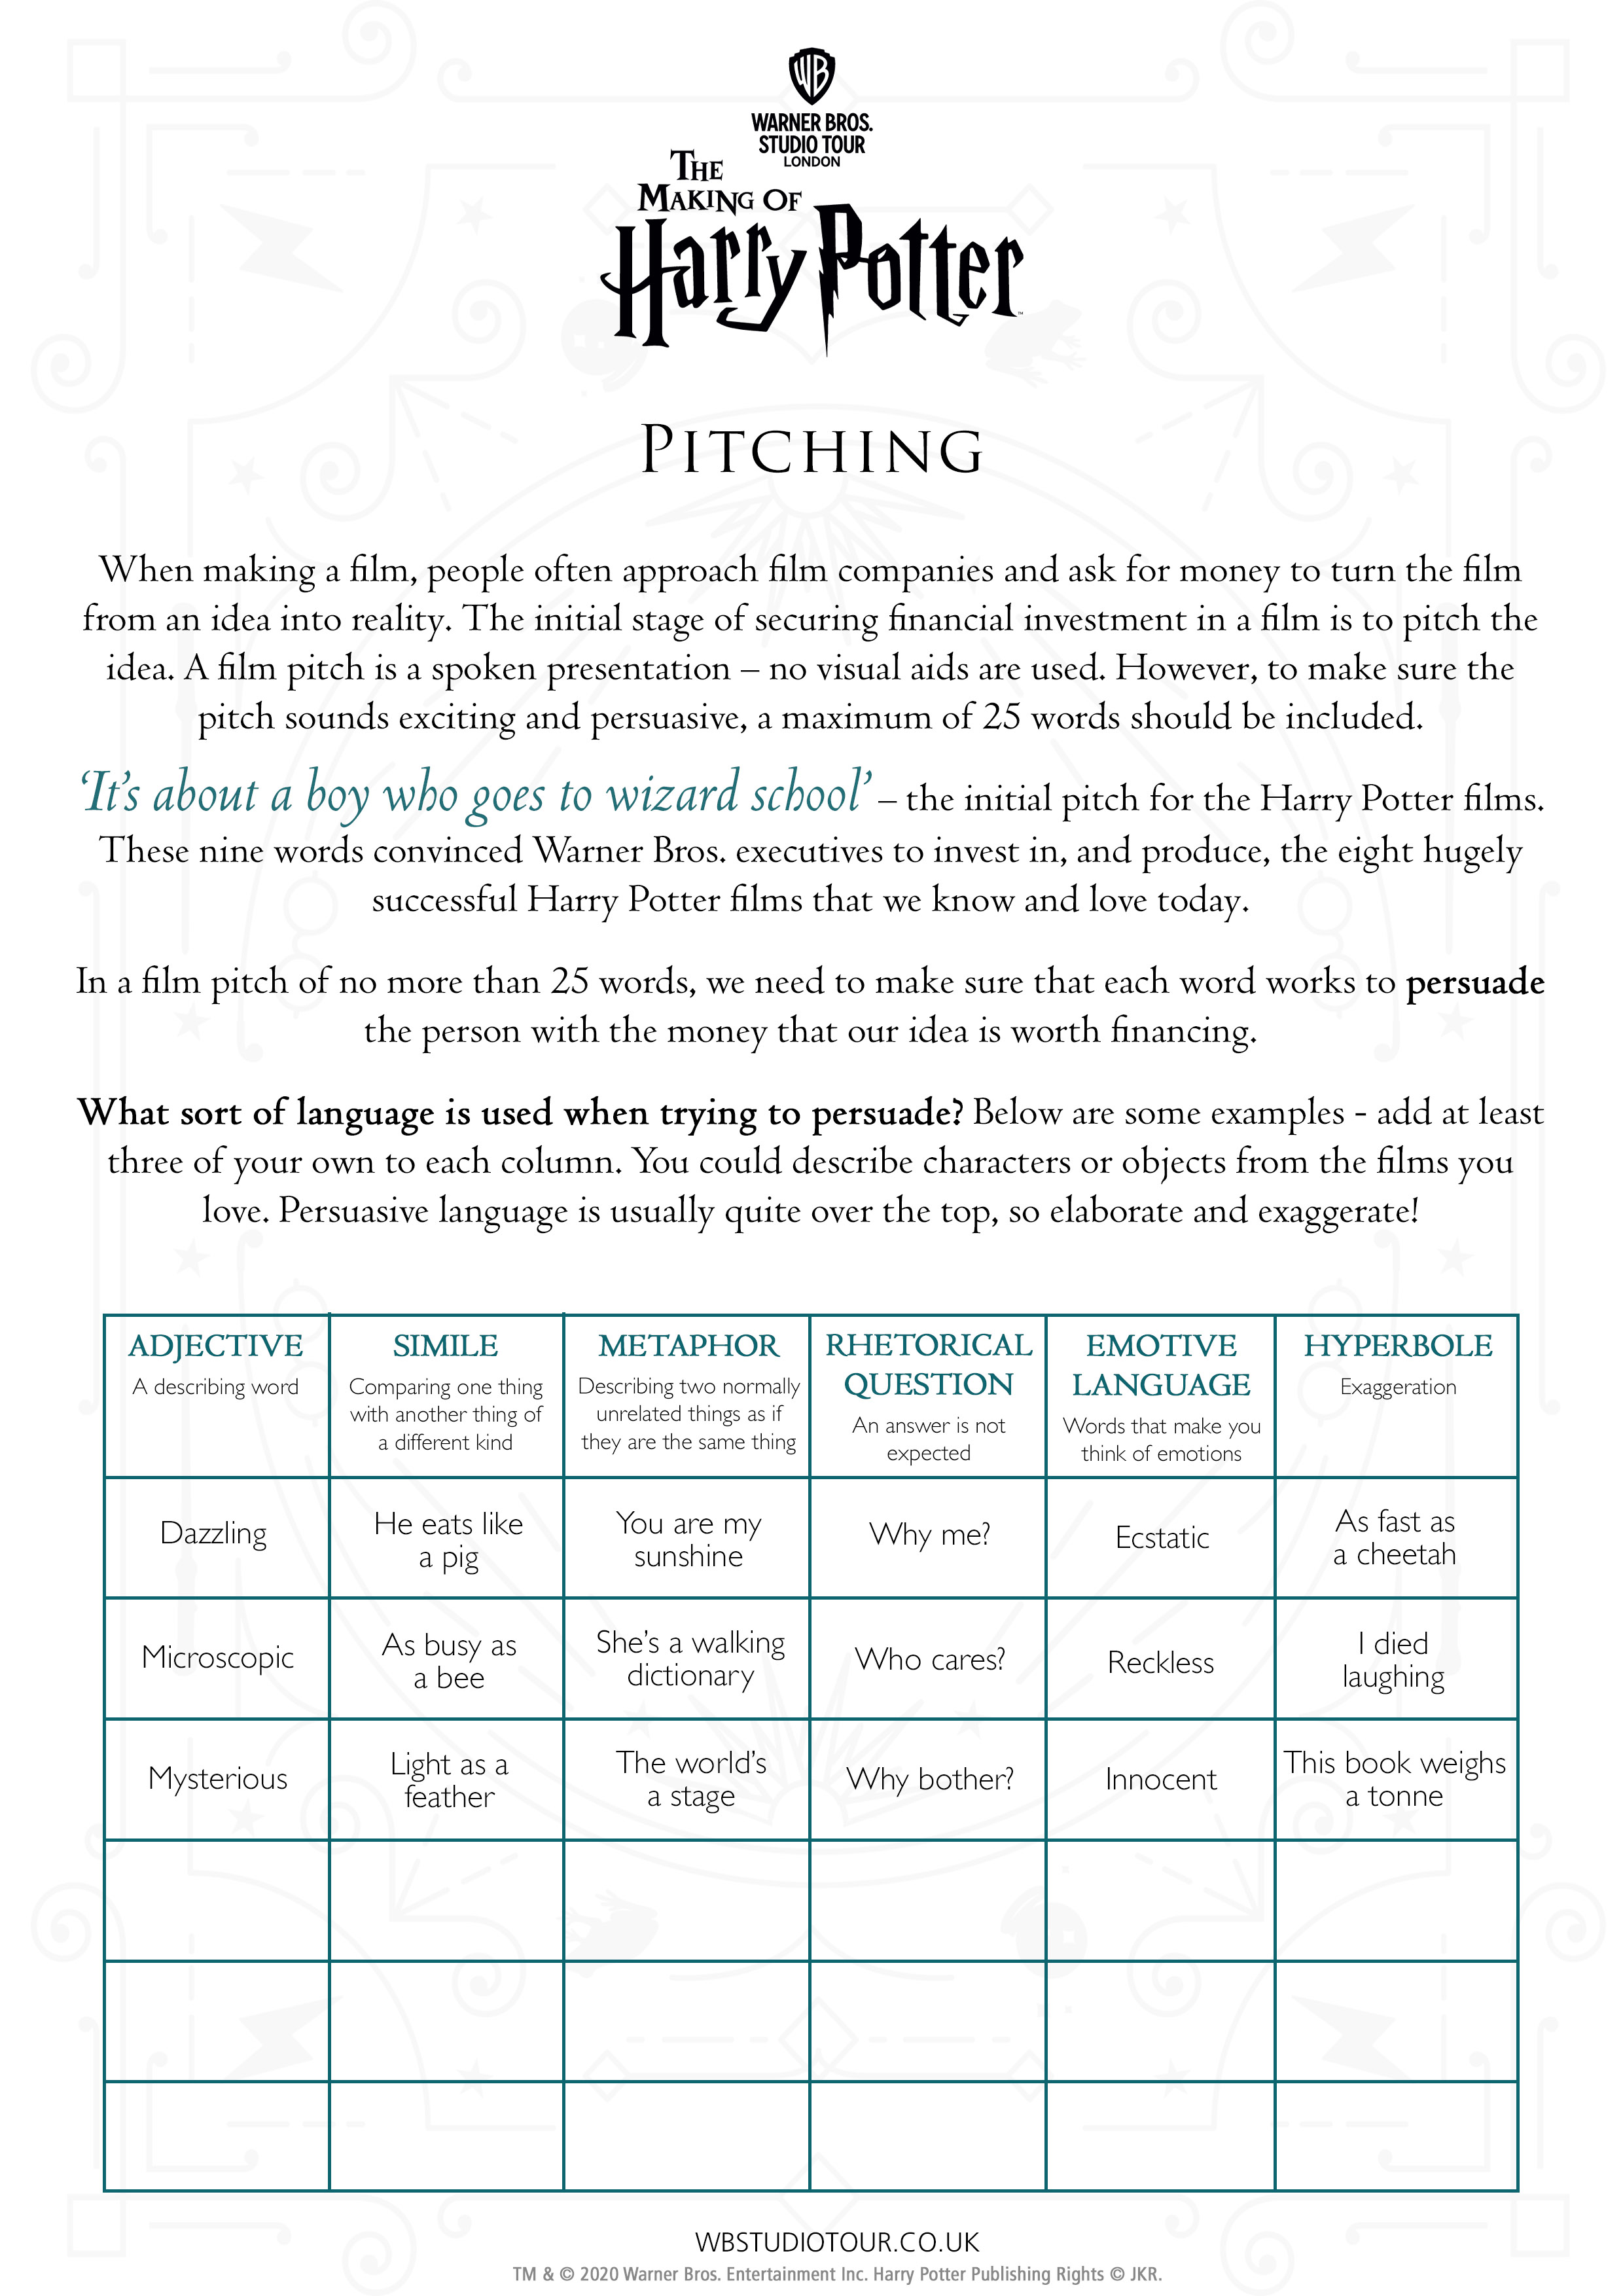 Pitching activity worksheets page 1 - Studio Tour at Home